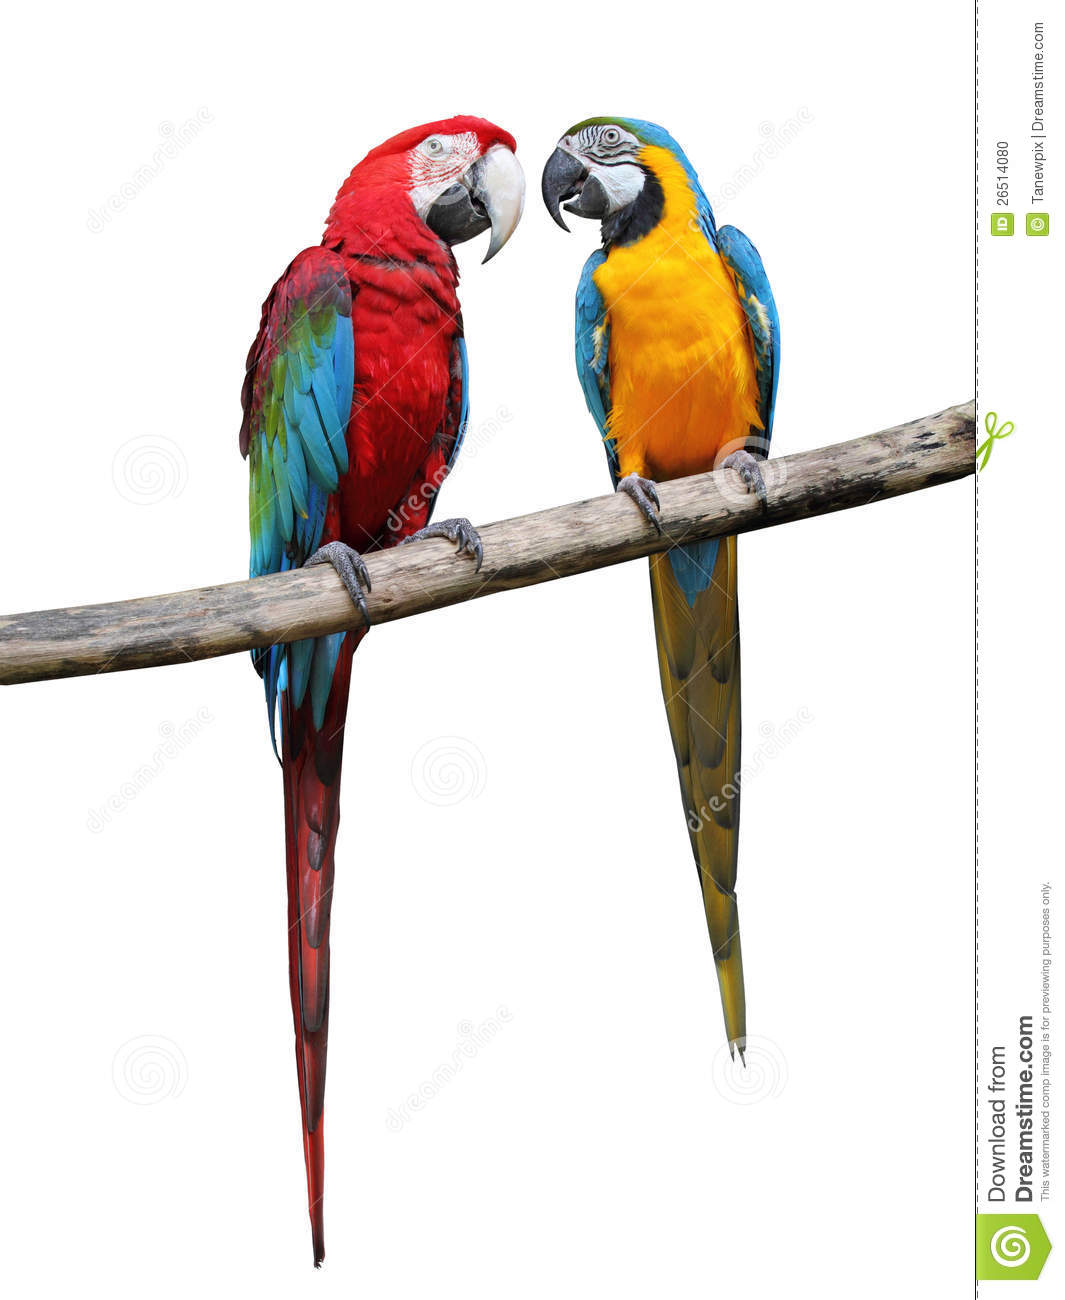 More similar stock images of ` Colorful parrots saying. `